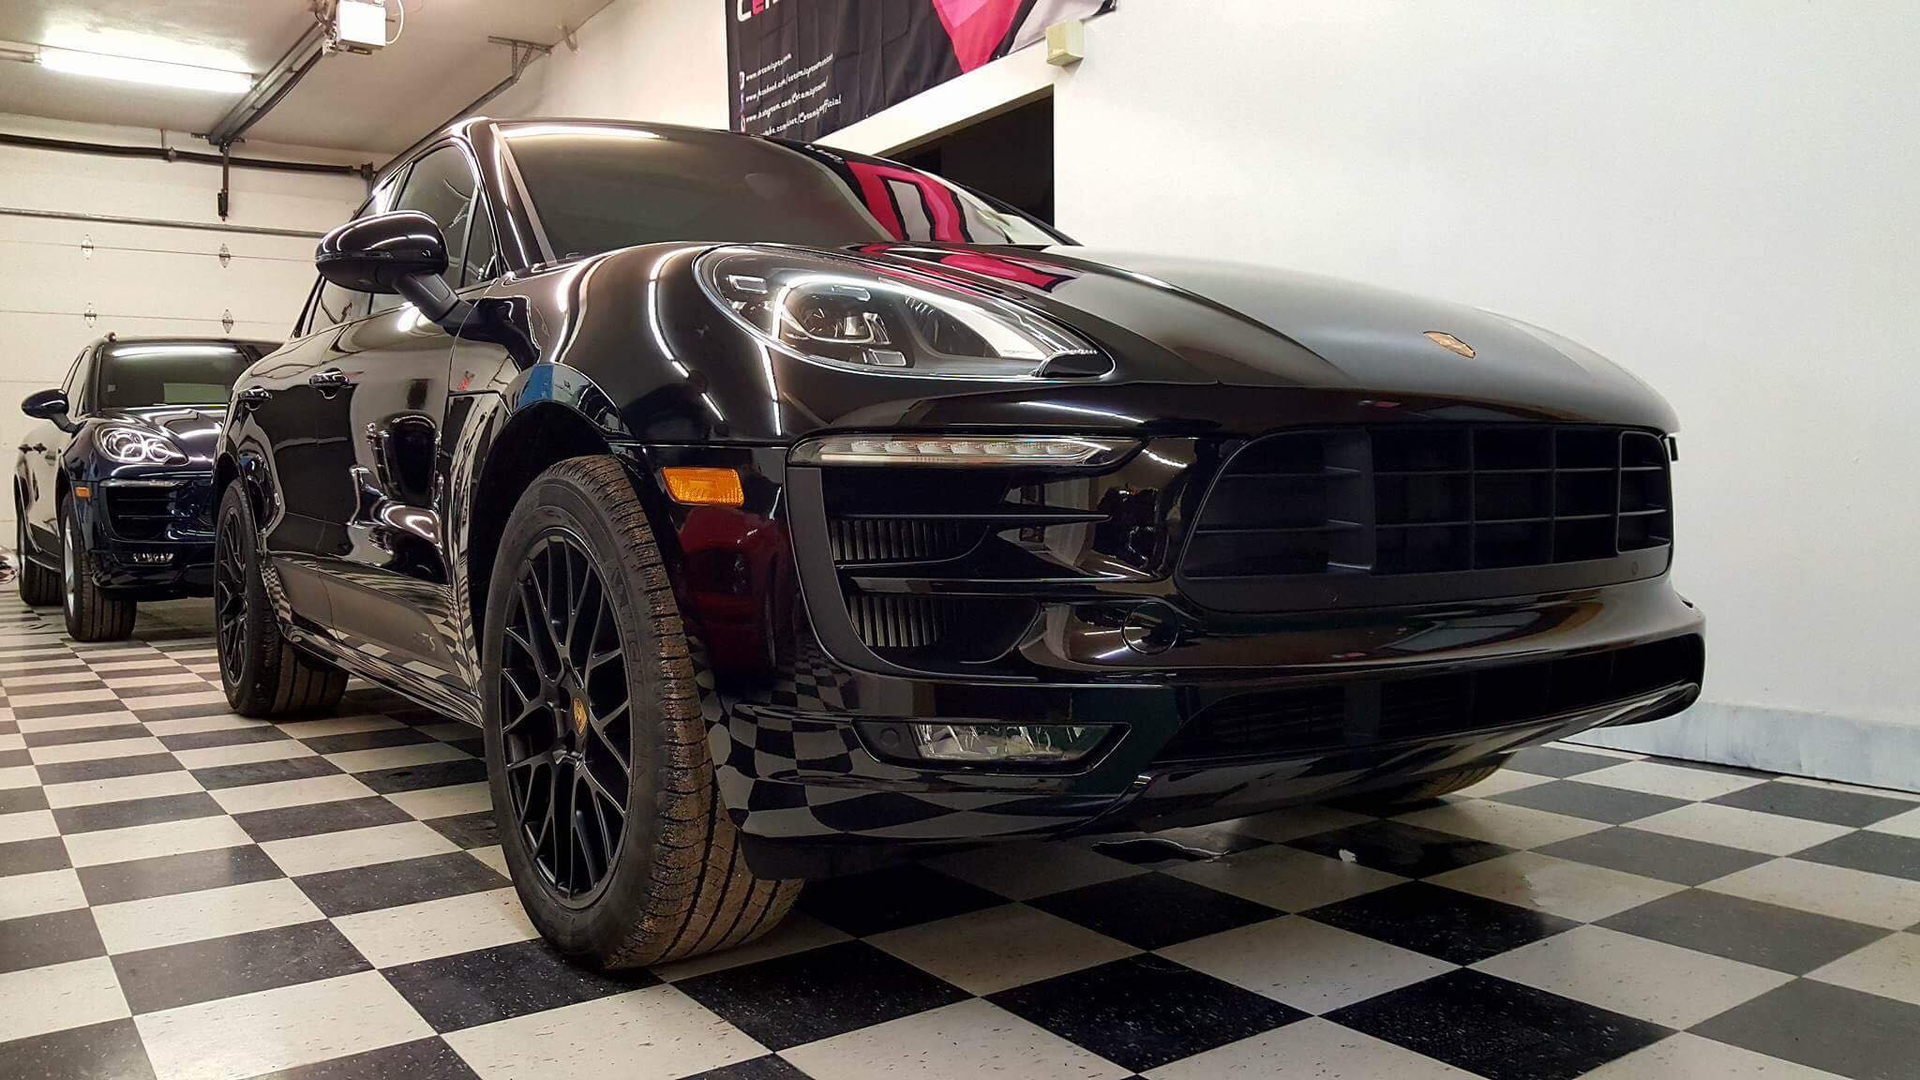 Auto detailing absolute detail and wash we only use the best products solutioingenieria Image collections